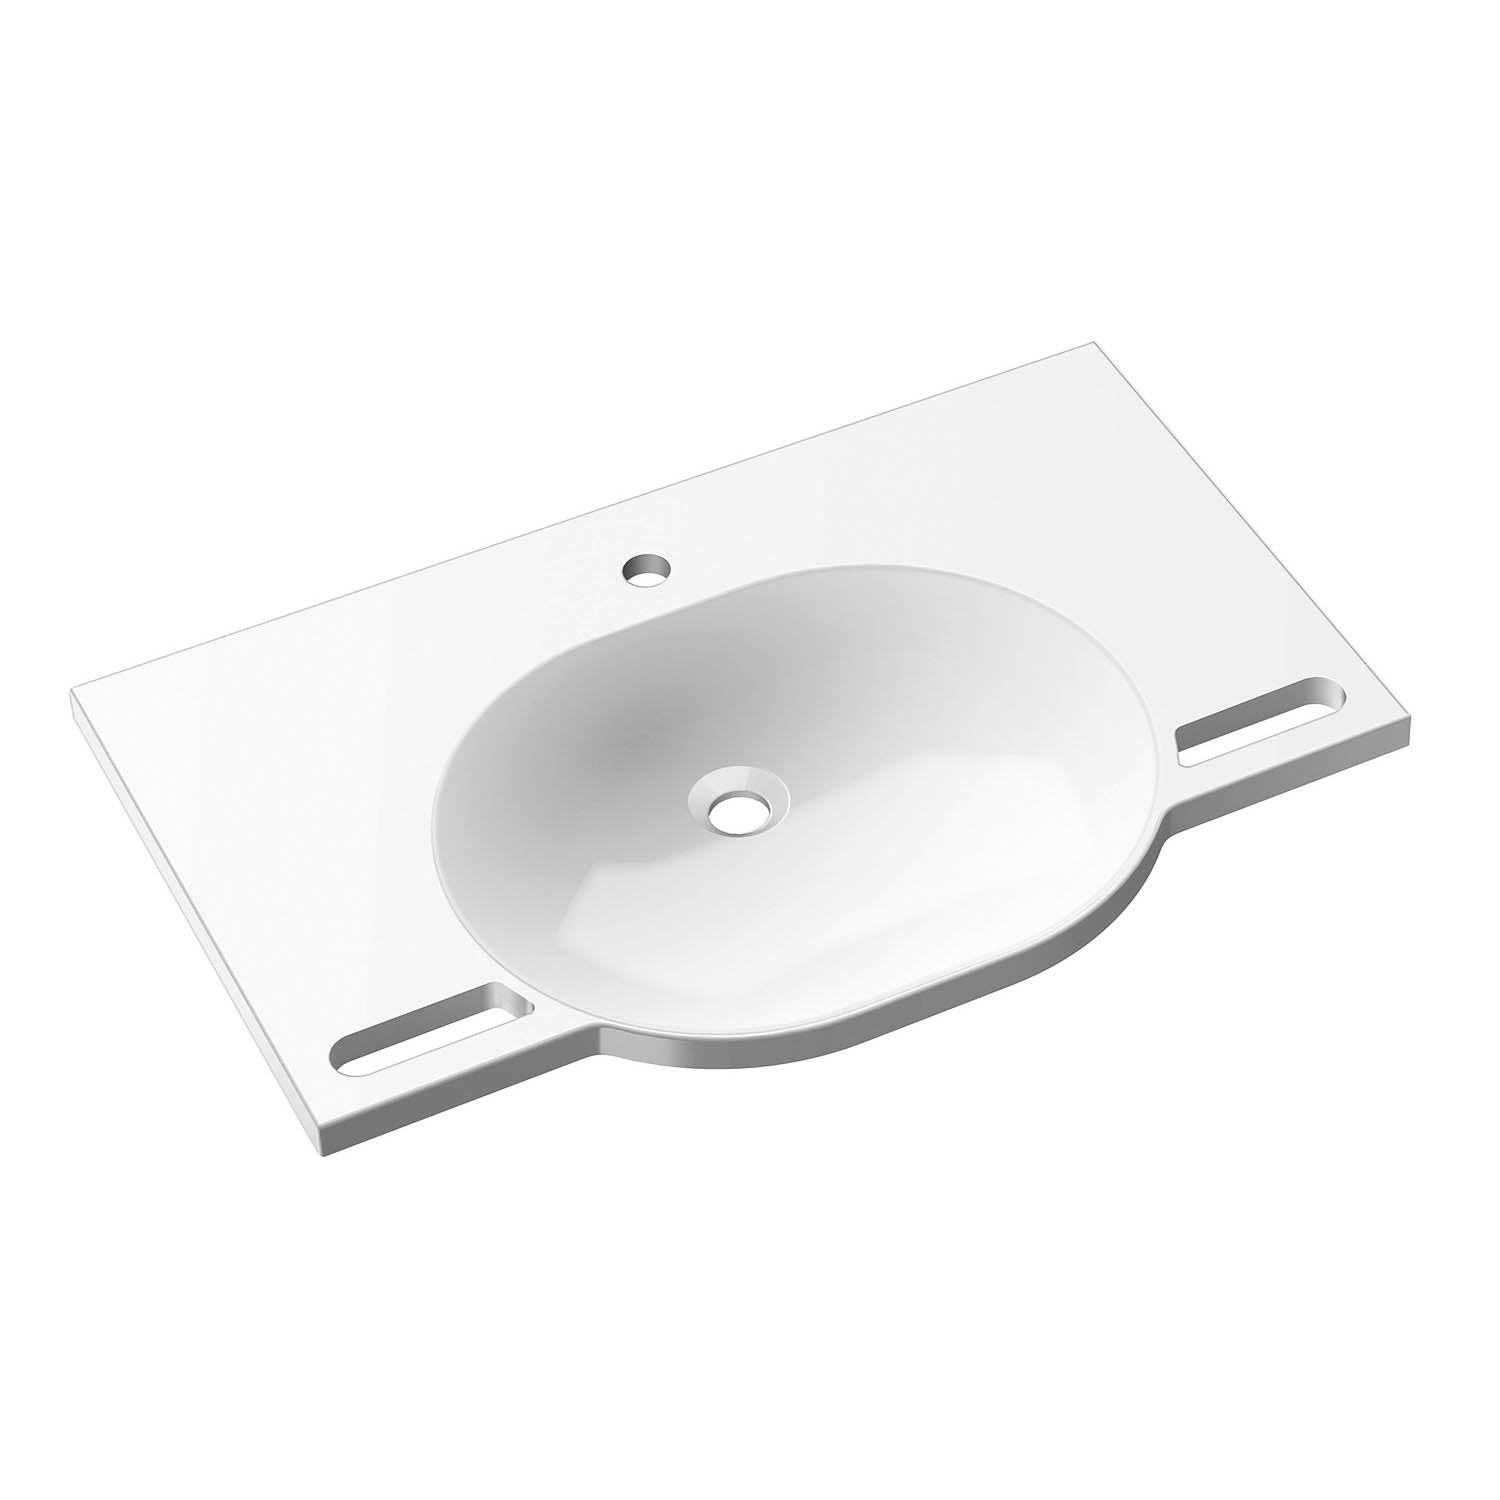 850mm SurfaceHold Wall Hung Large Oval Basin with one tap hole on a white background